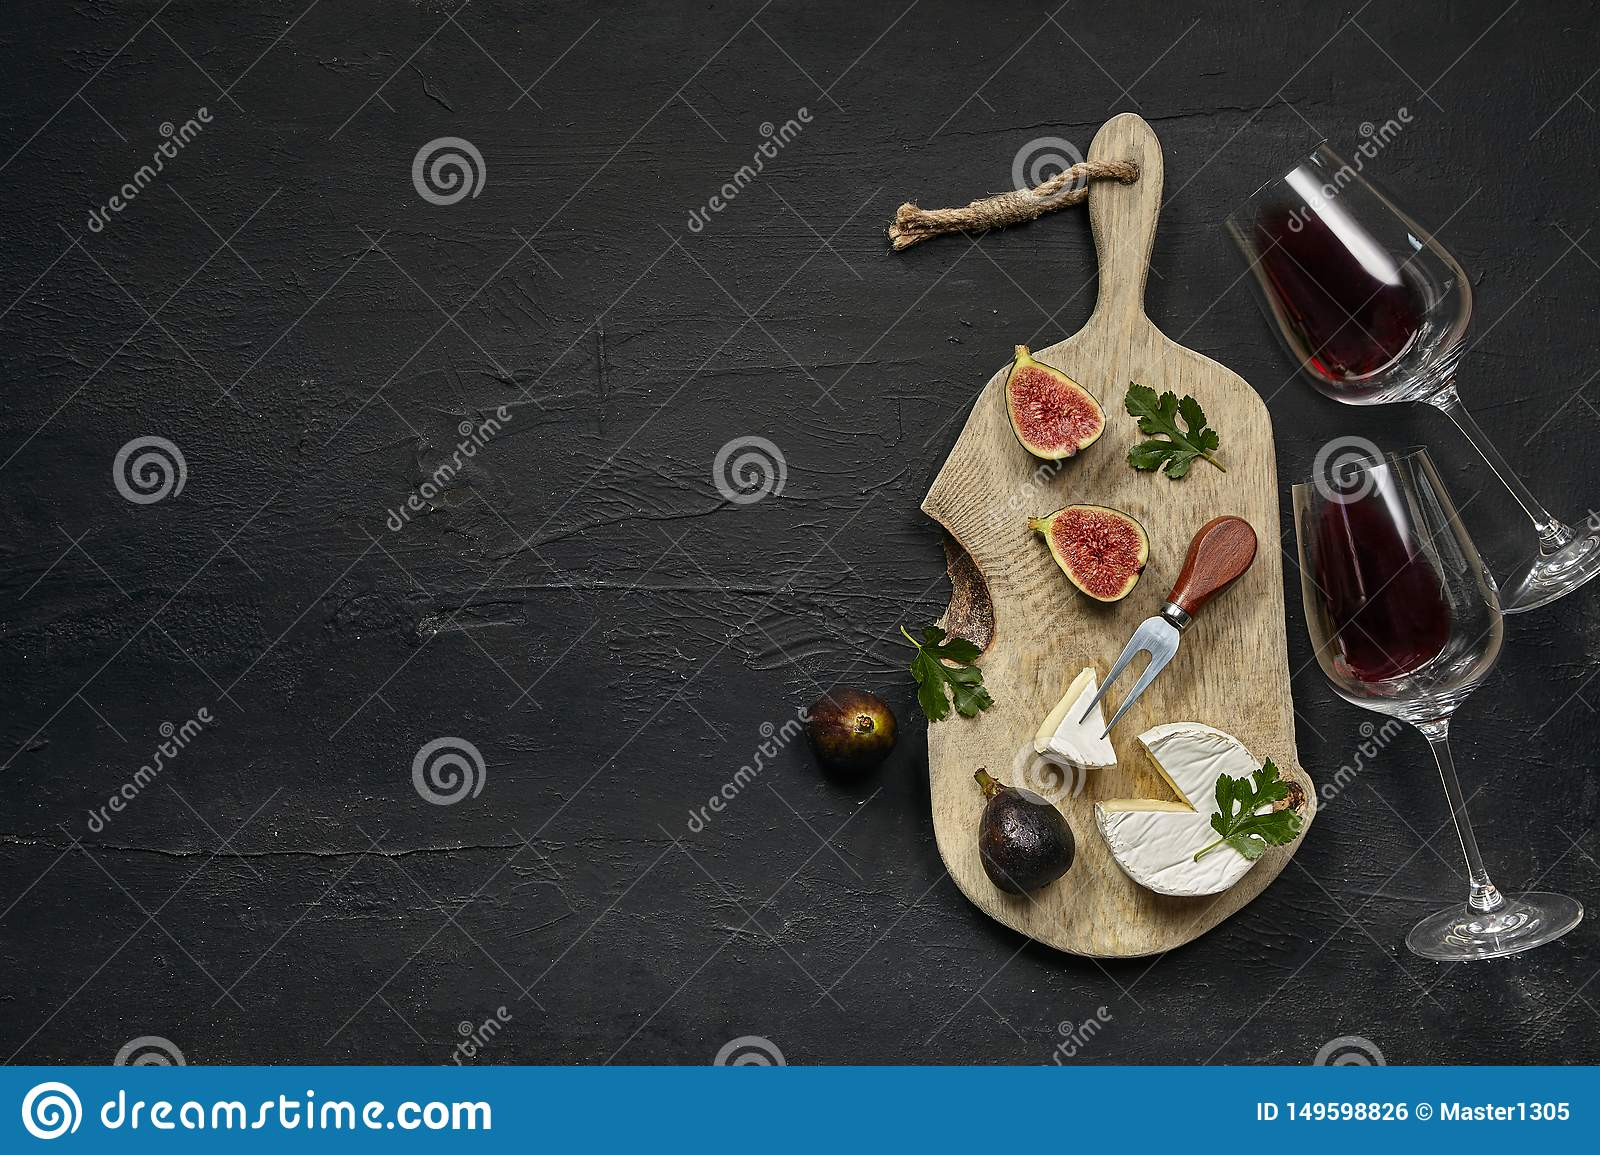 Two glasses of red wine and a tasty cheese plate on a wooden kitchen plate.